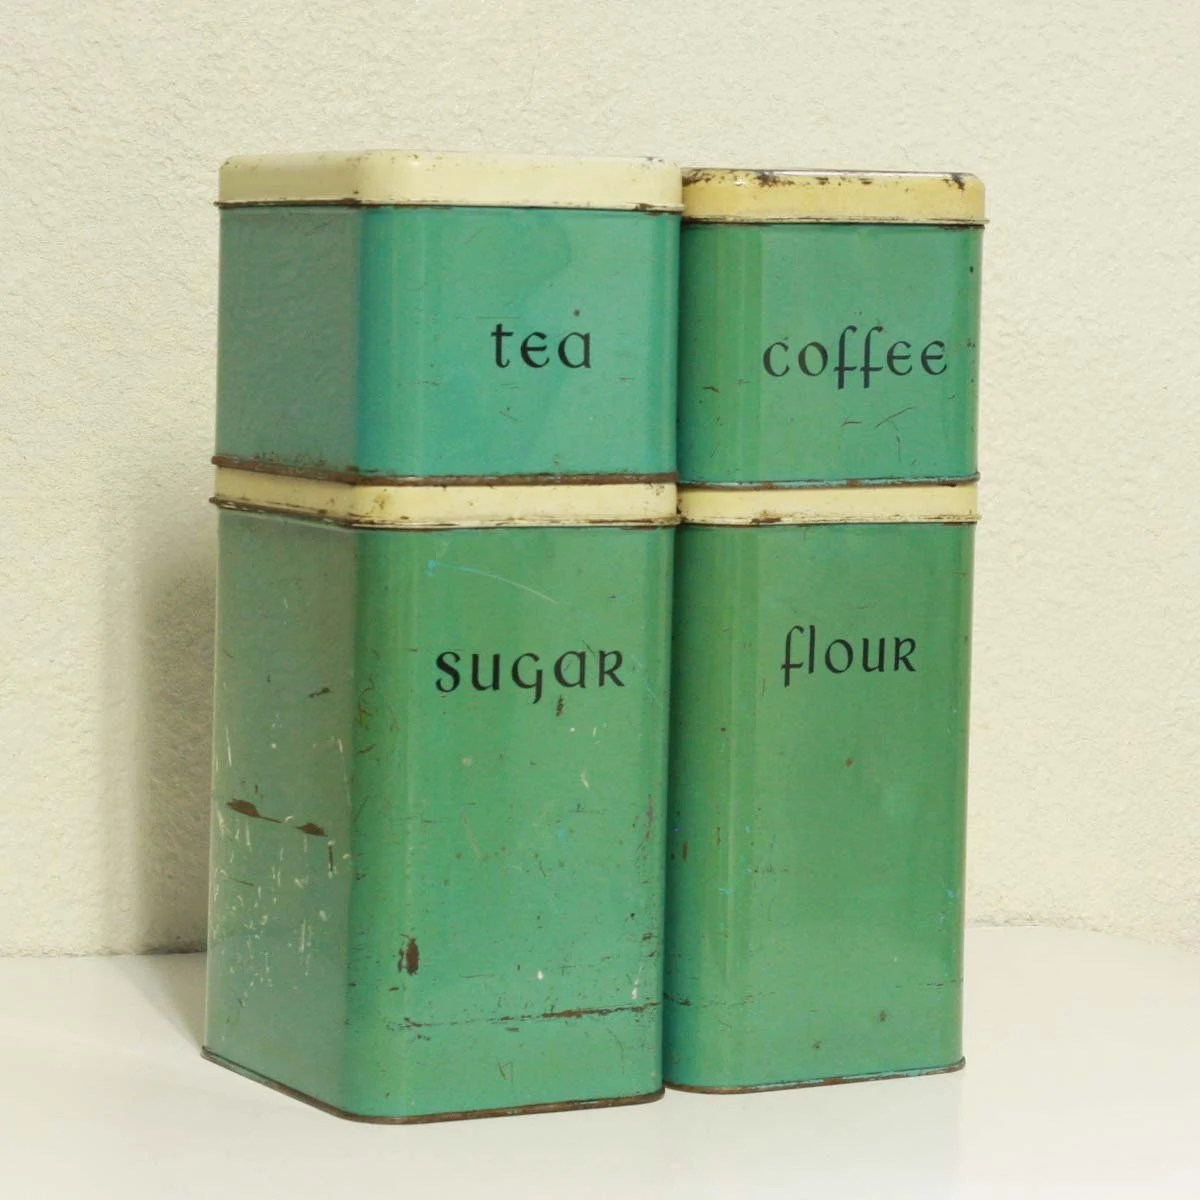 vintage retro kitchen canisters ideasidea vintage canisters tins metal green teal set